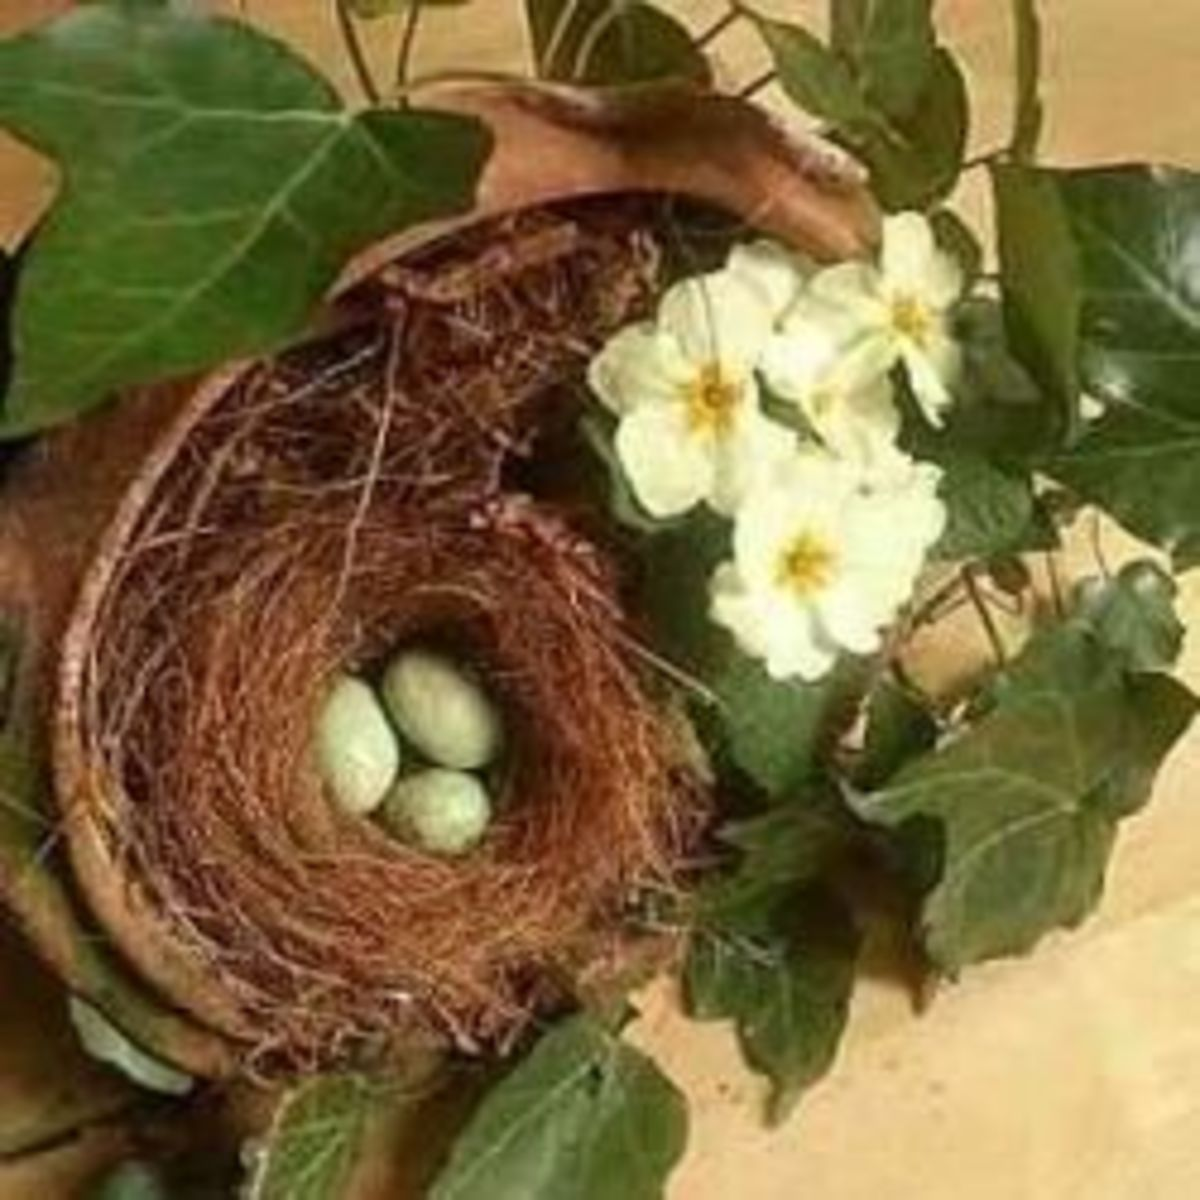 Birds Nests Crafts: Make Birds Nests